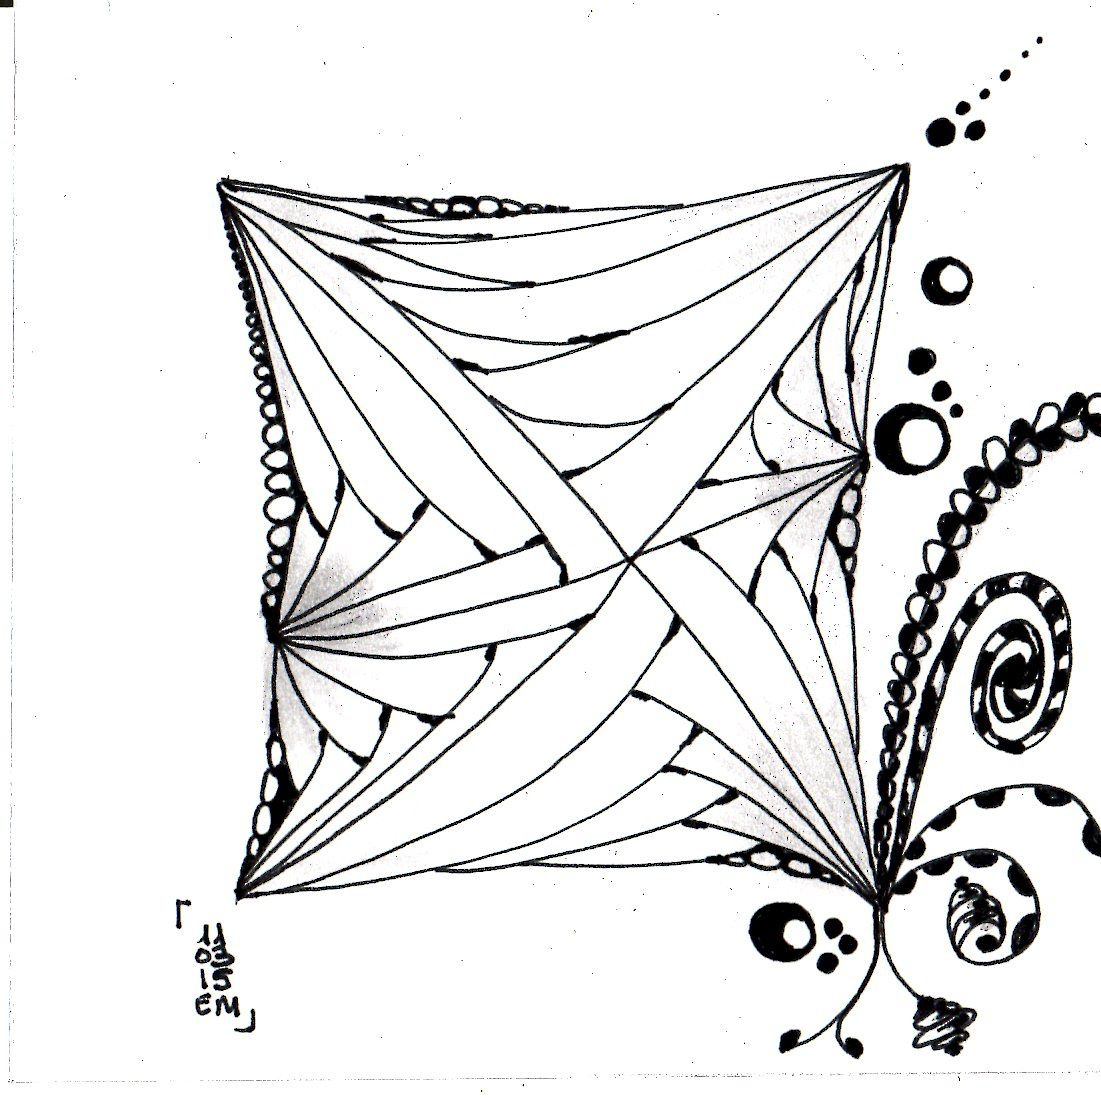 Zentangle® #7 le 11 mars 2015 emma messana